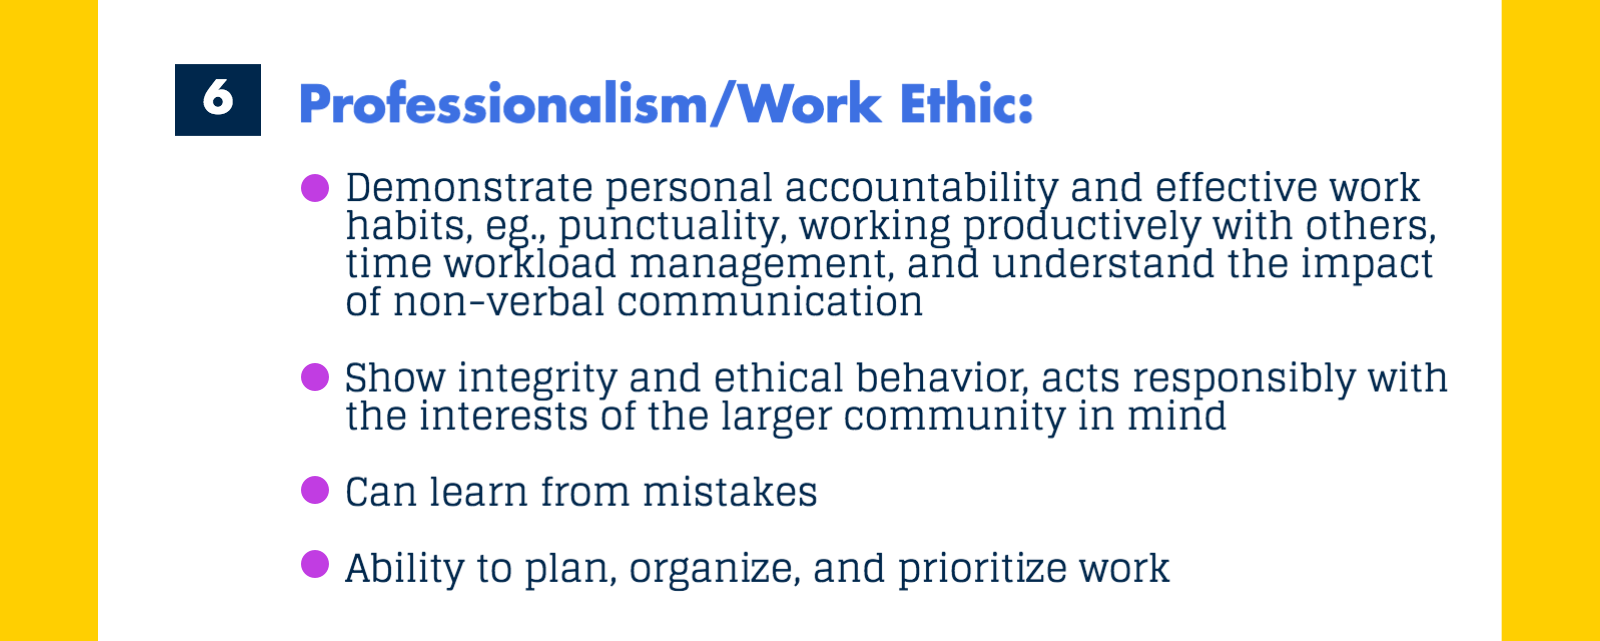 career readiness career center competency 6 is professionalism work ethic image 7 of 9